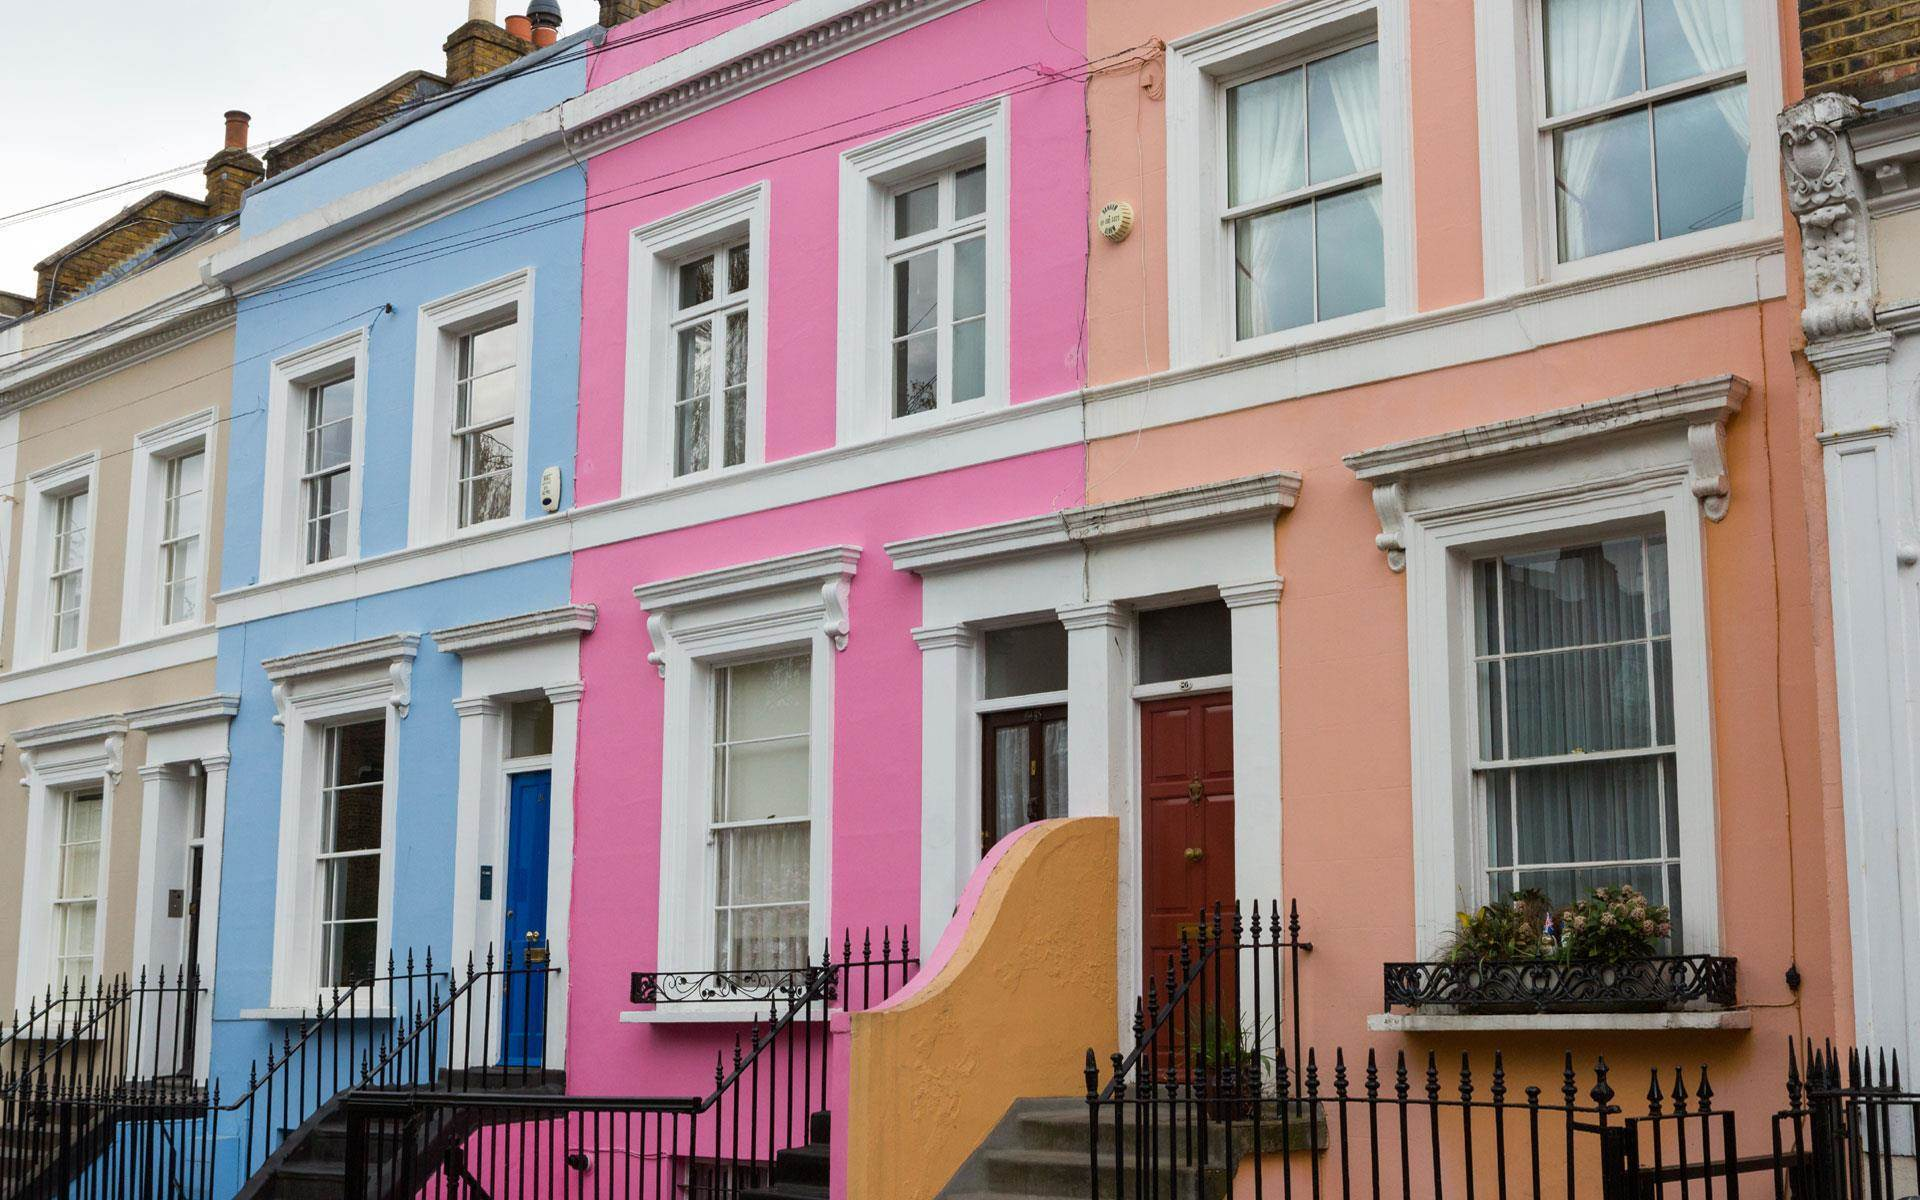 London London And Vicinity Notting Hill Real Estate and Homes - Christie's International Real Estate